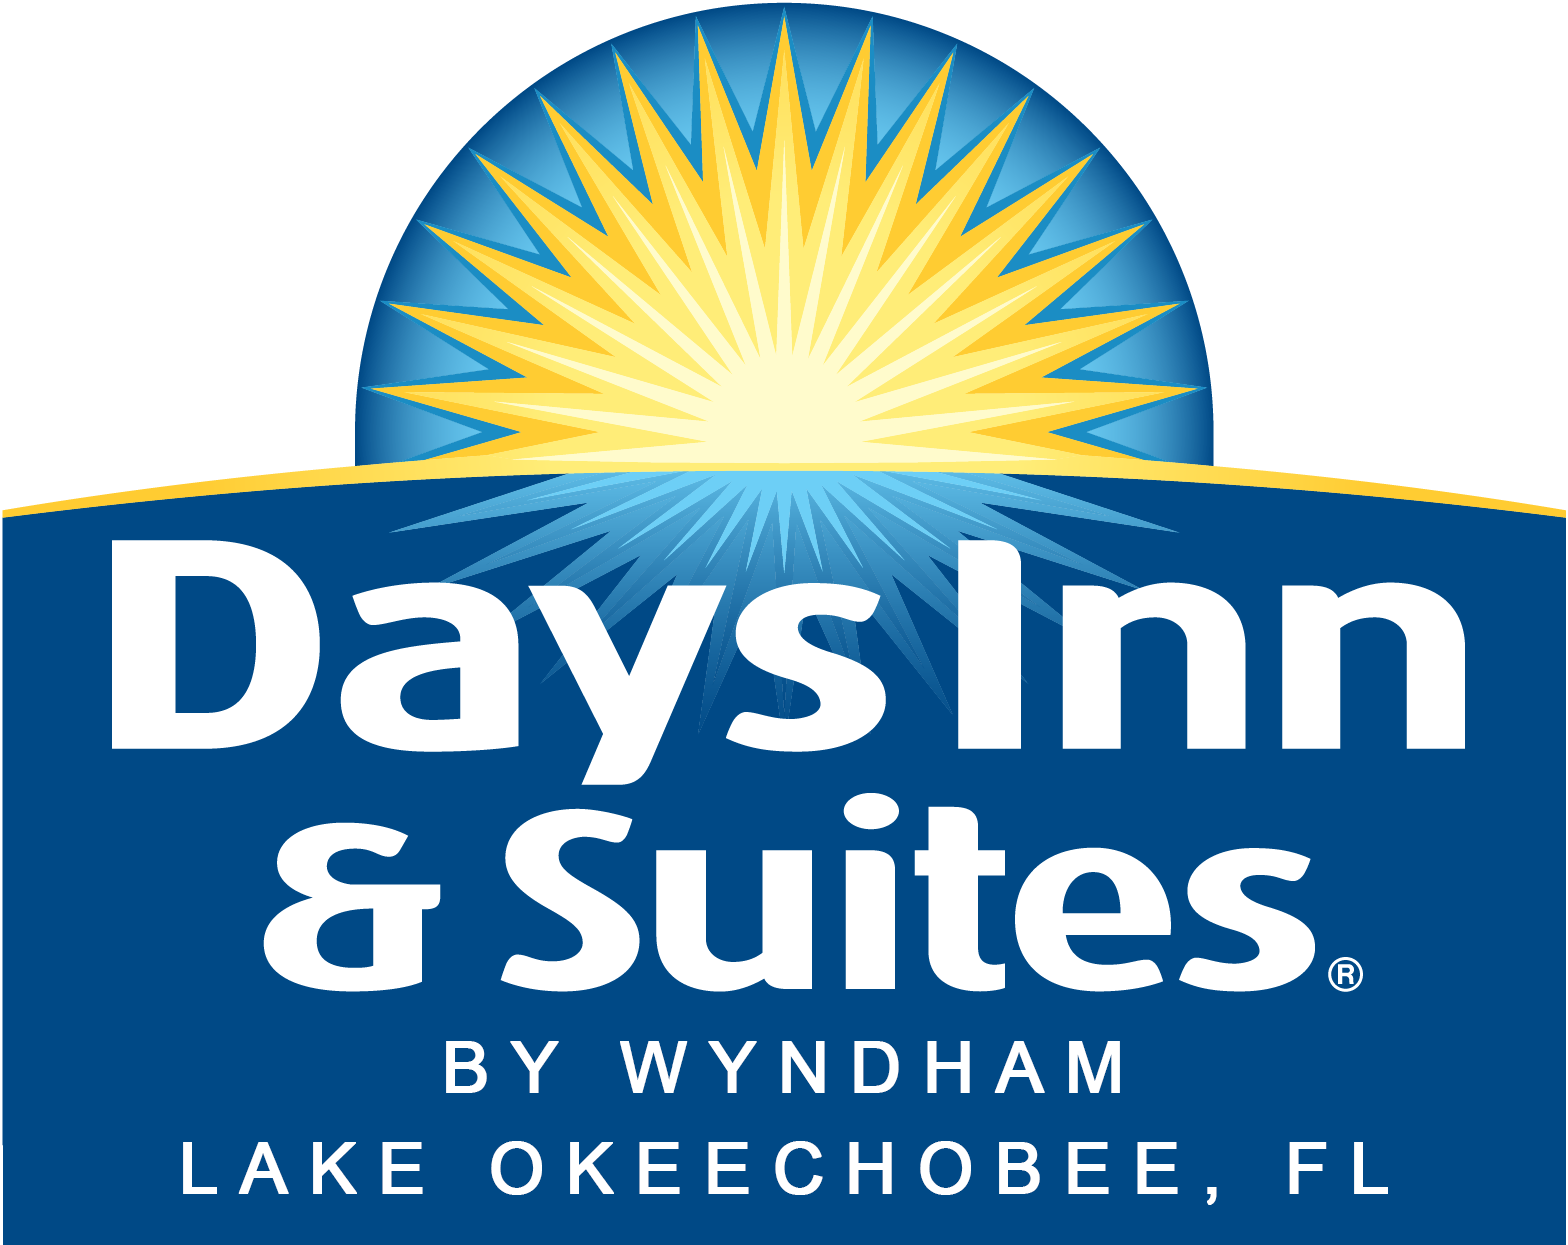 Days Inn Logo - By Wyndham.png